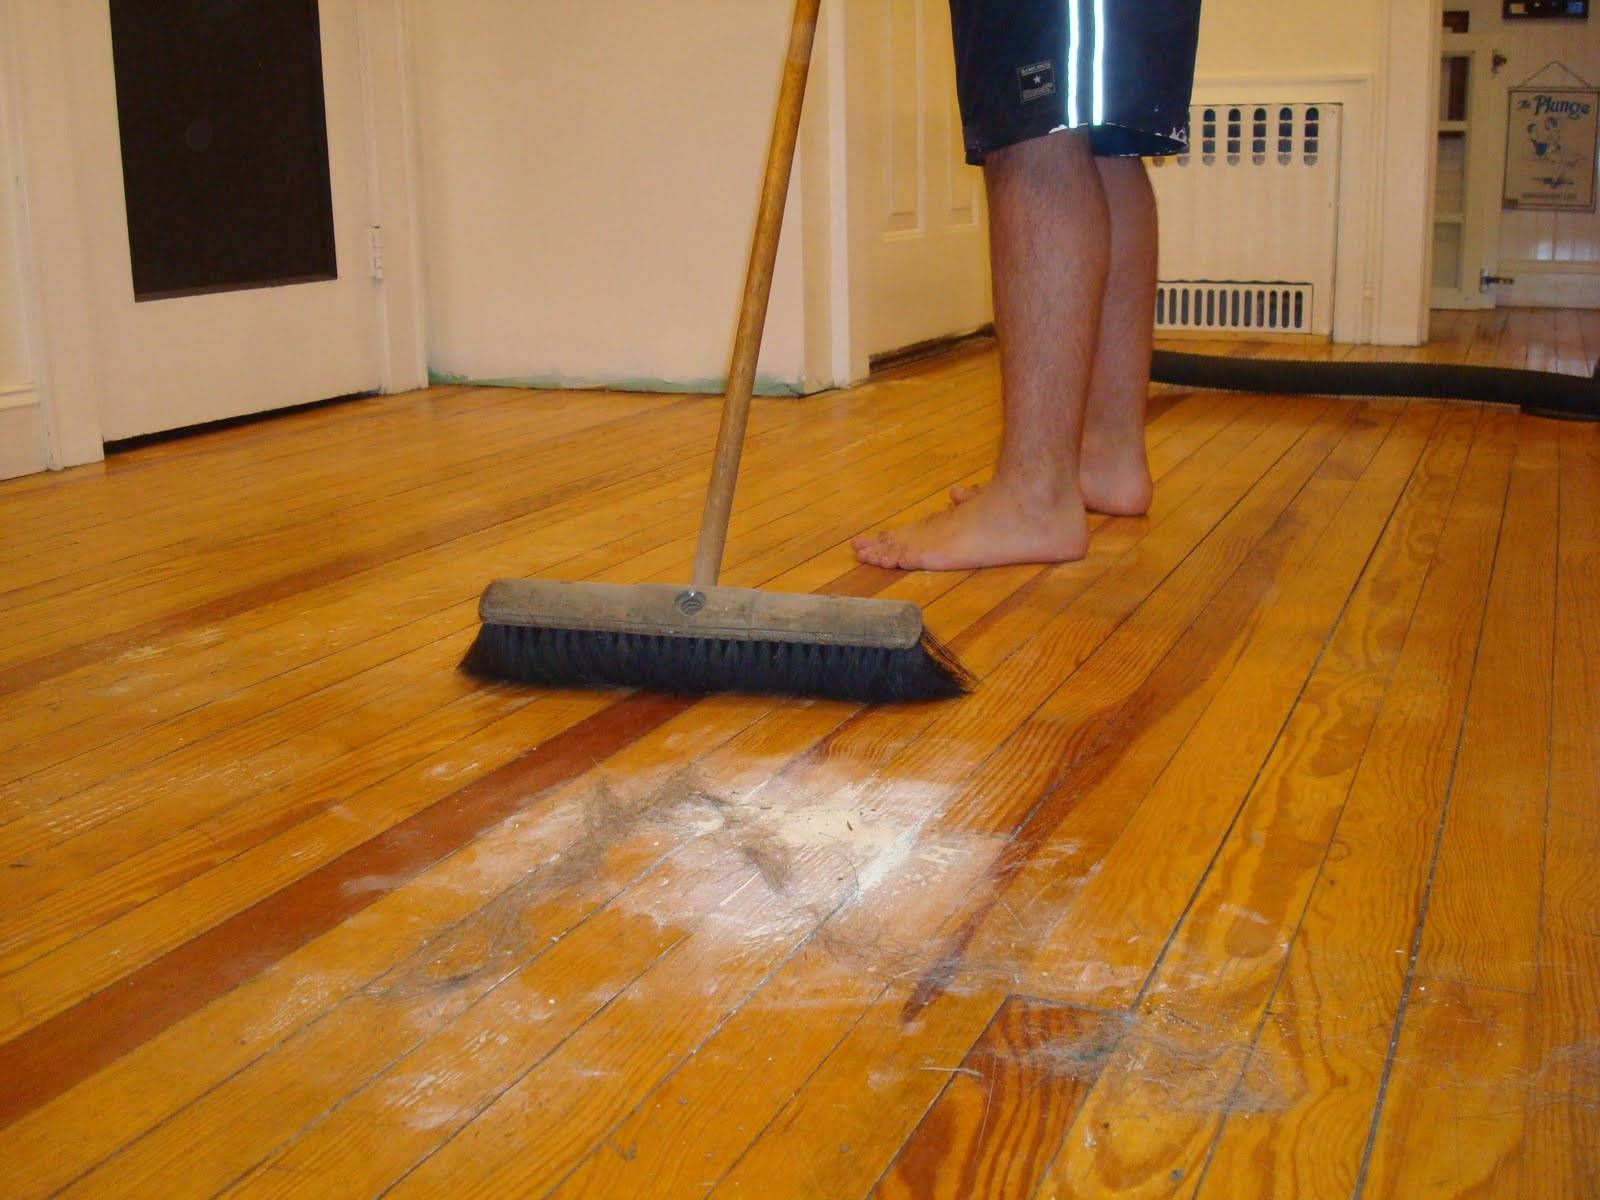 can i clean hardwood floors with vinegar and water of cleaning hardwood floors with vinegar hardwood floor cleaning how do intended for cleaning hardwood floors with vinegar hardwood floor c